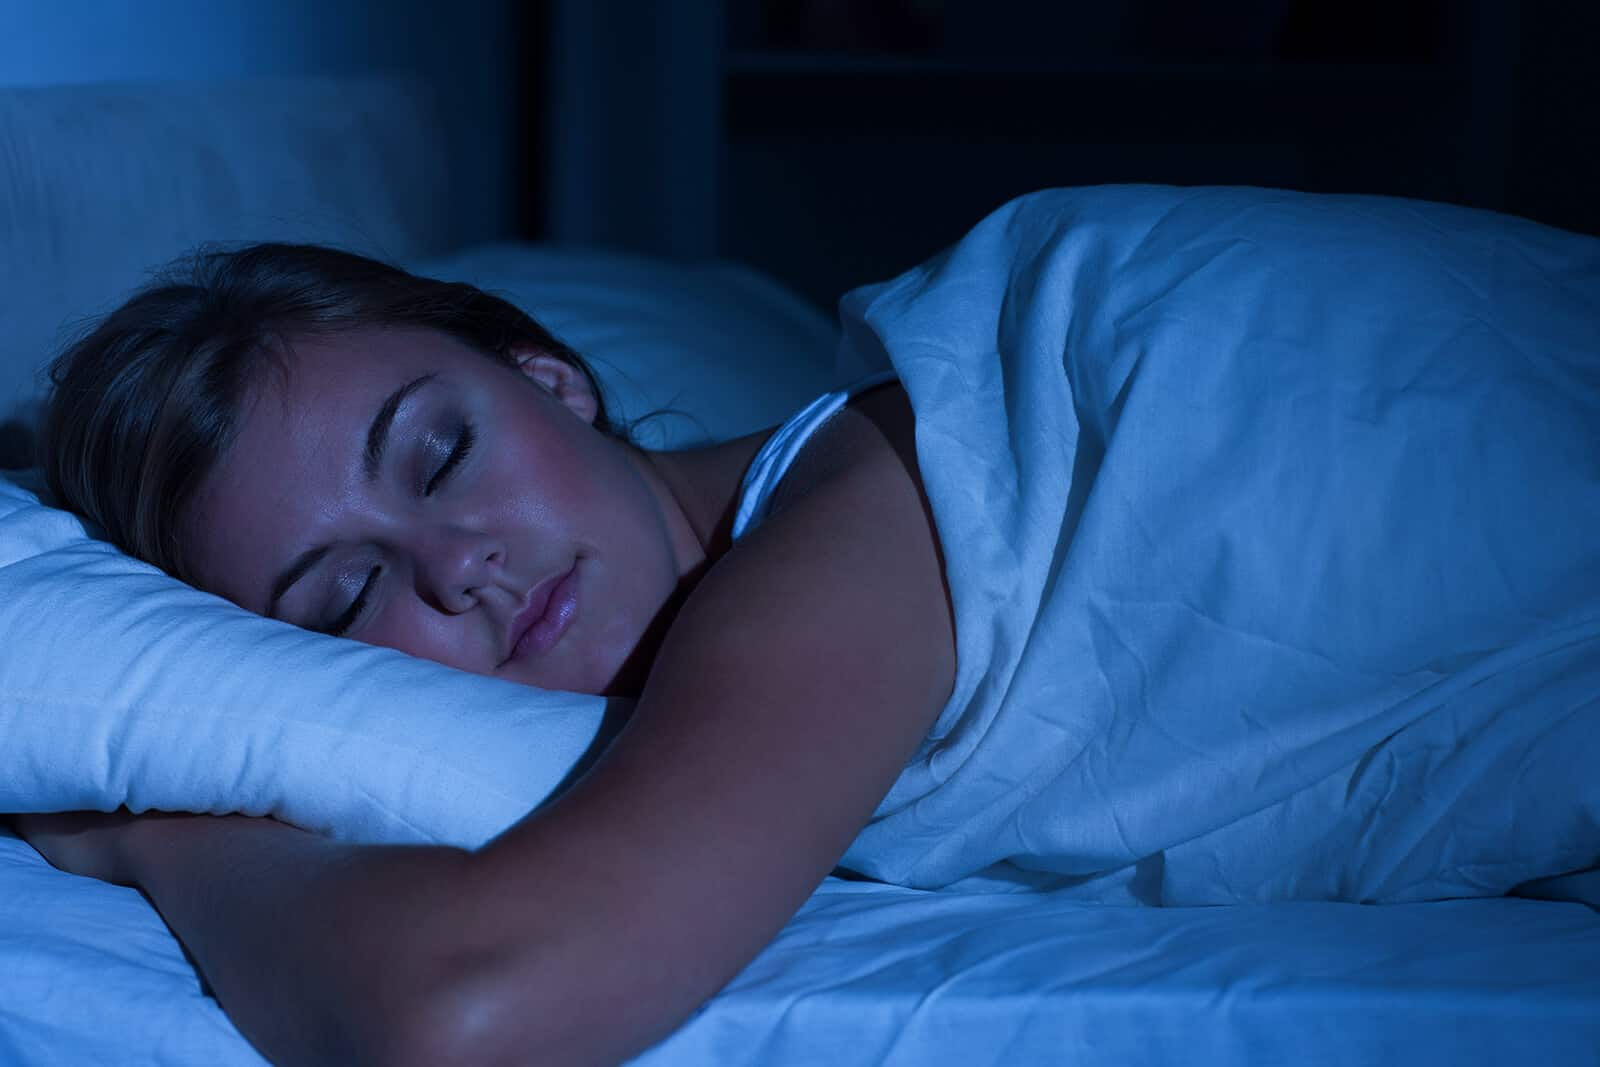 Circadian Rhythm Sleep Disorders can lead to a weakened immune system, infections or illnesses